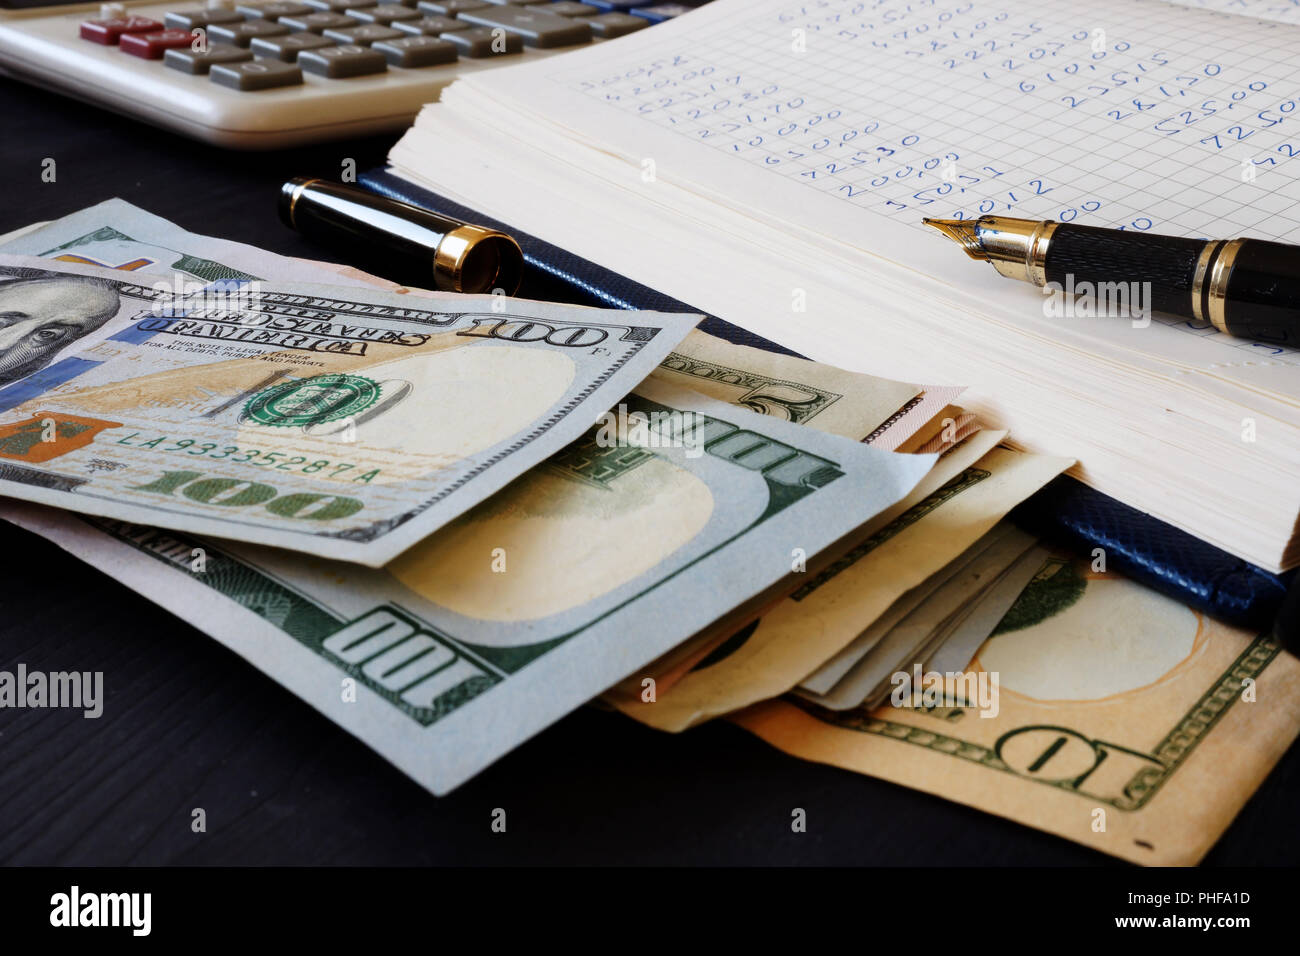 Ledger, calculator and dollar banknotes. Bookkeeping. - Stock Image